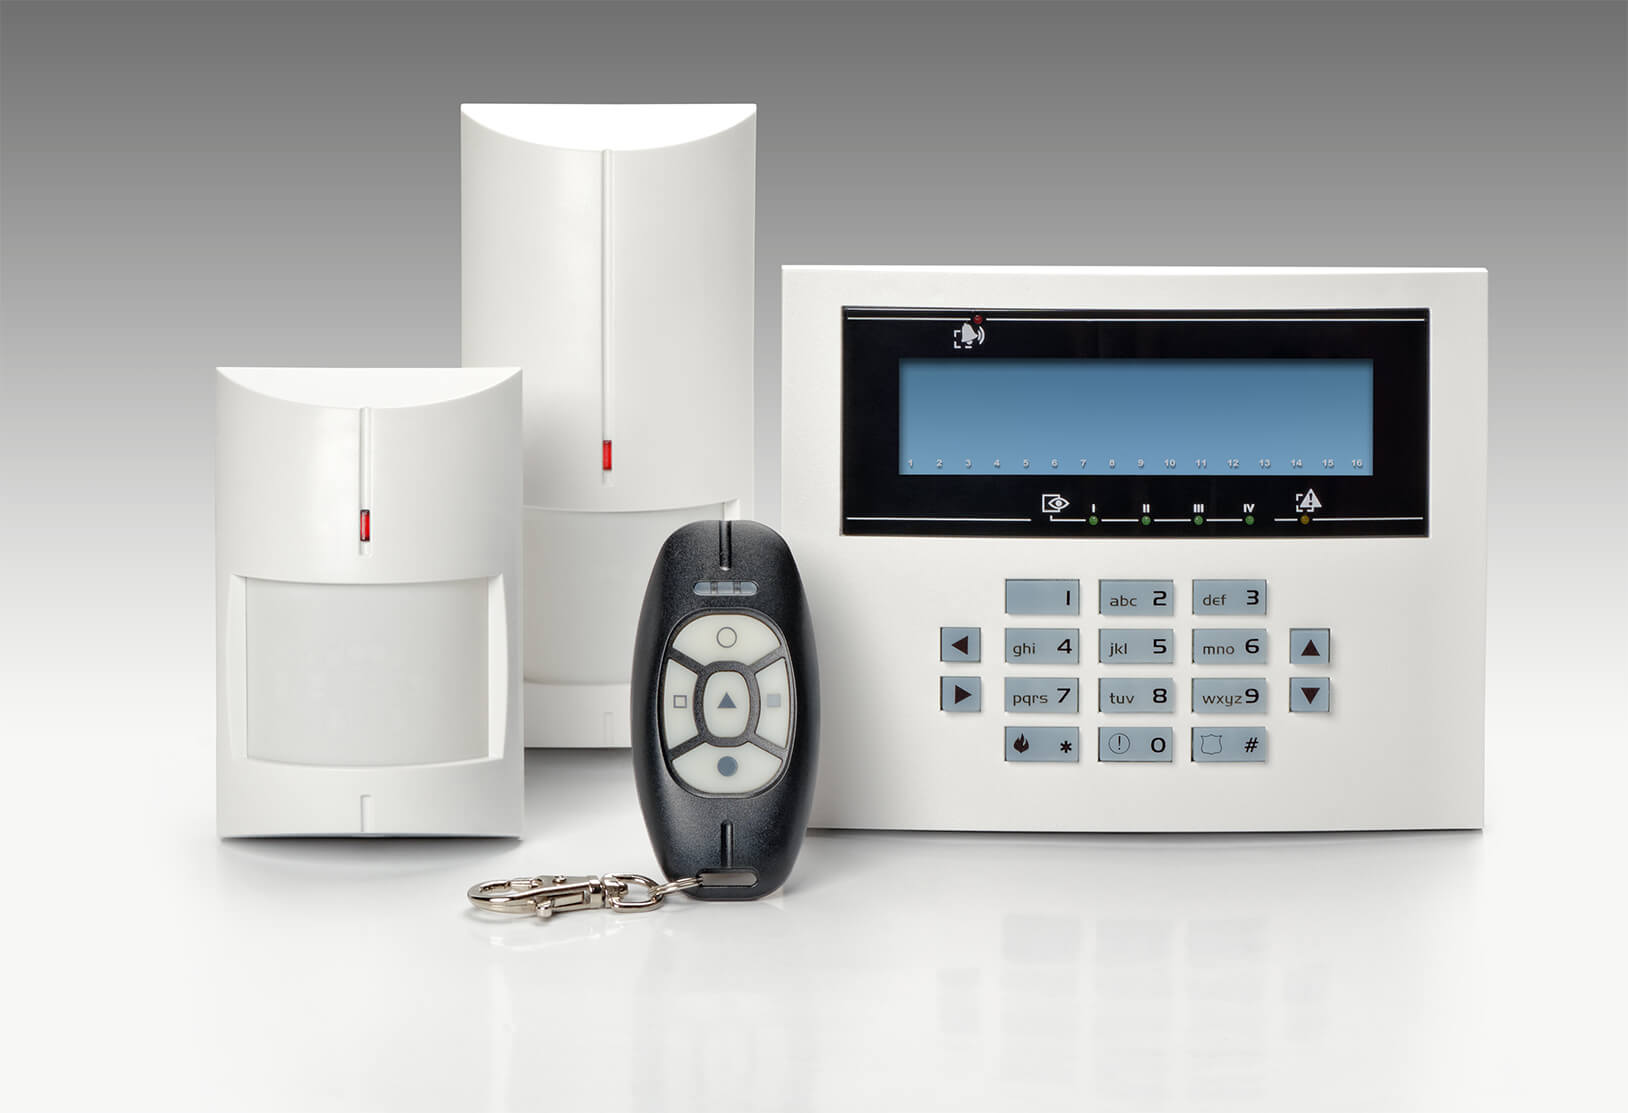 Commercial Burglar Alarms For Business in Earlsfield SW18  - Local Earlsfield SW18 burglar alarm company.Call 02078872244 - Dedicated to Safety & Security. Companies, shops and homes ..